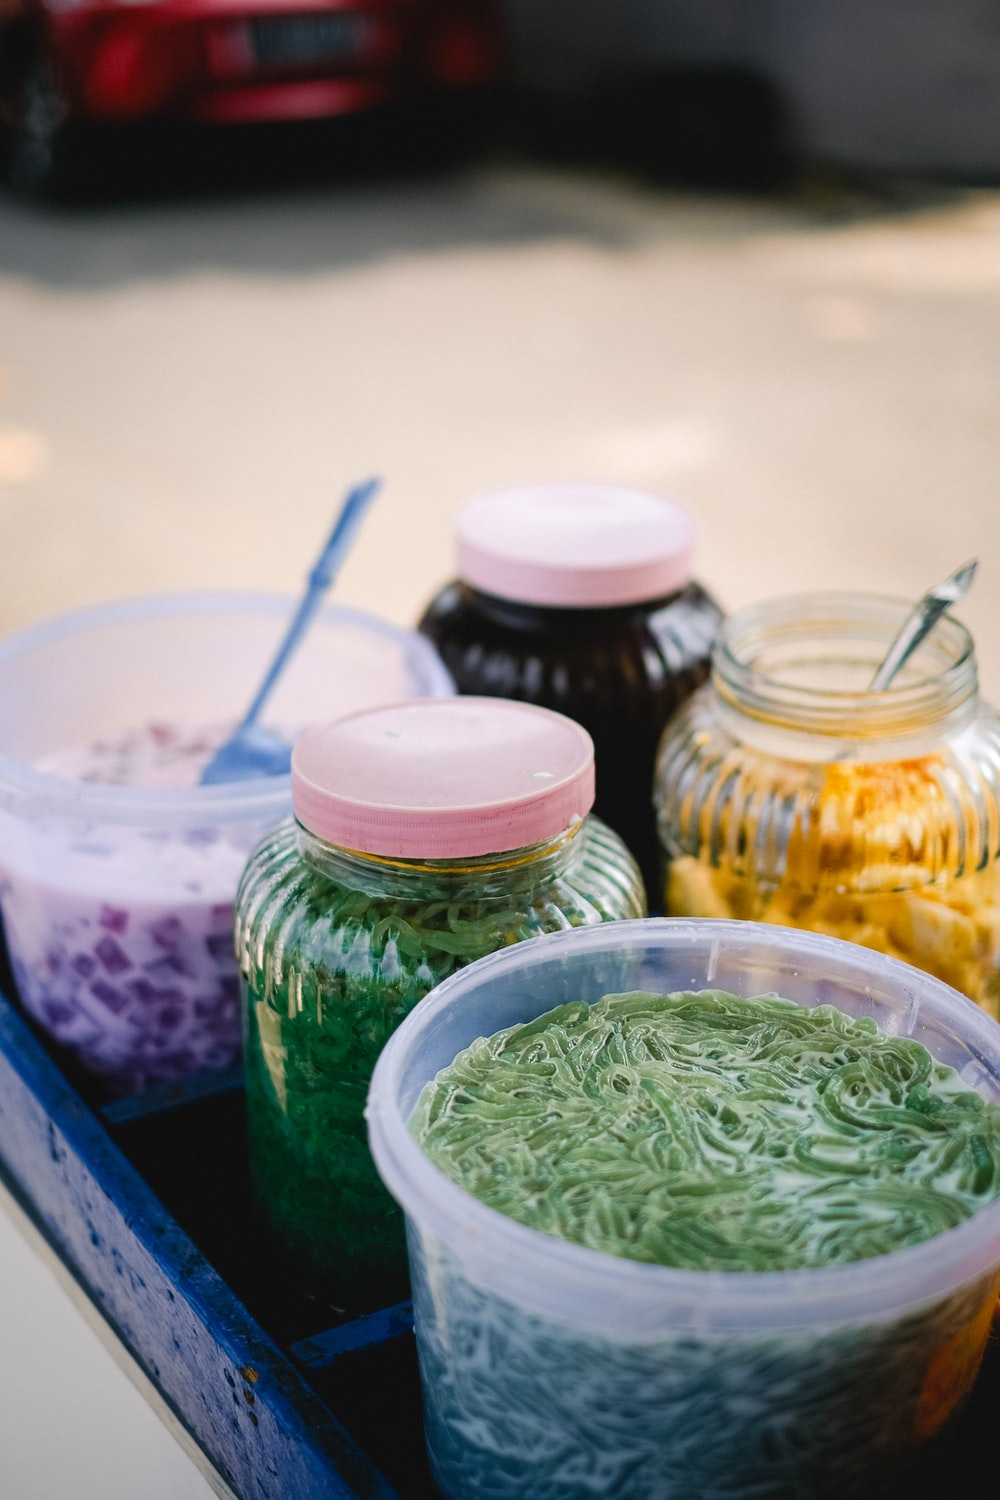 green leaves in clear glass jars